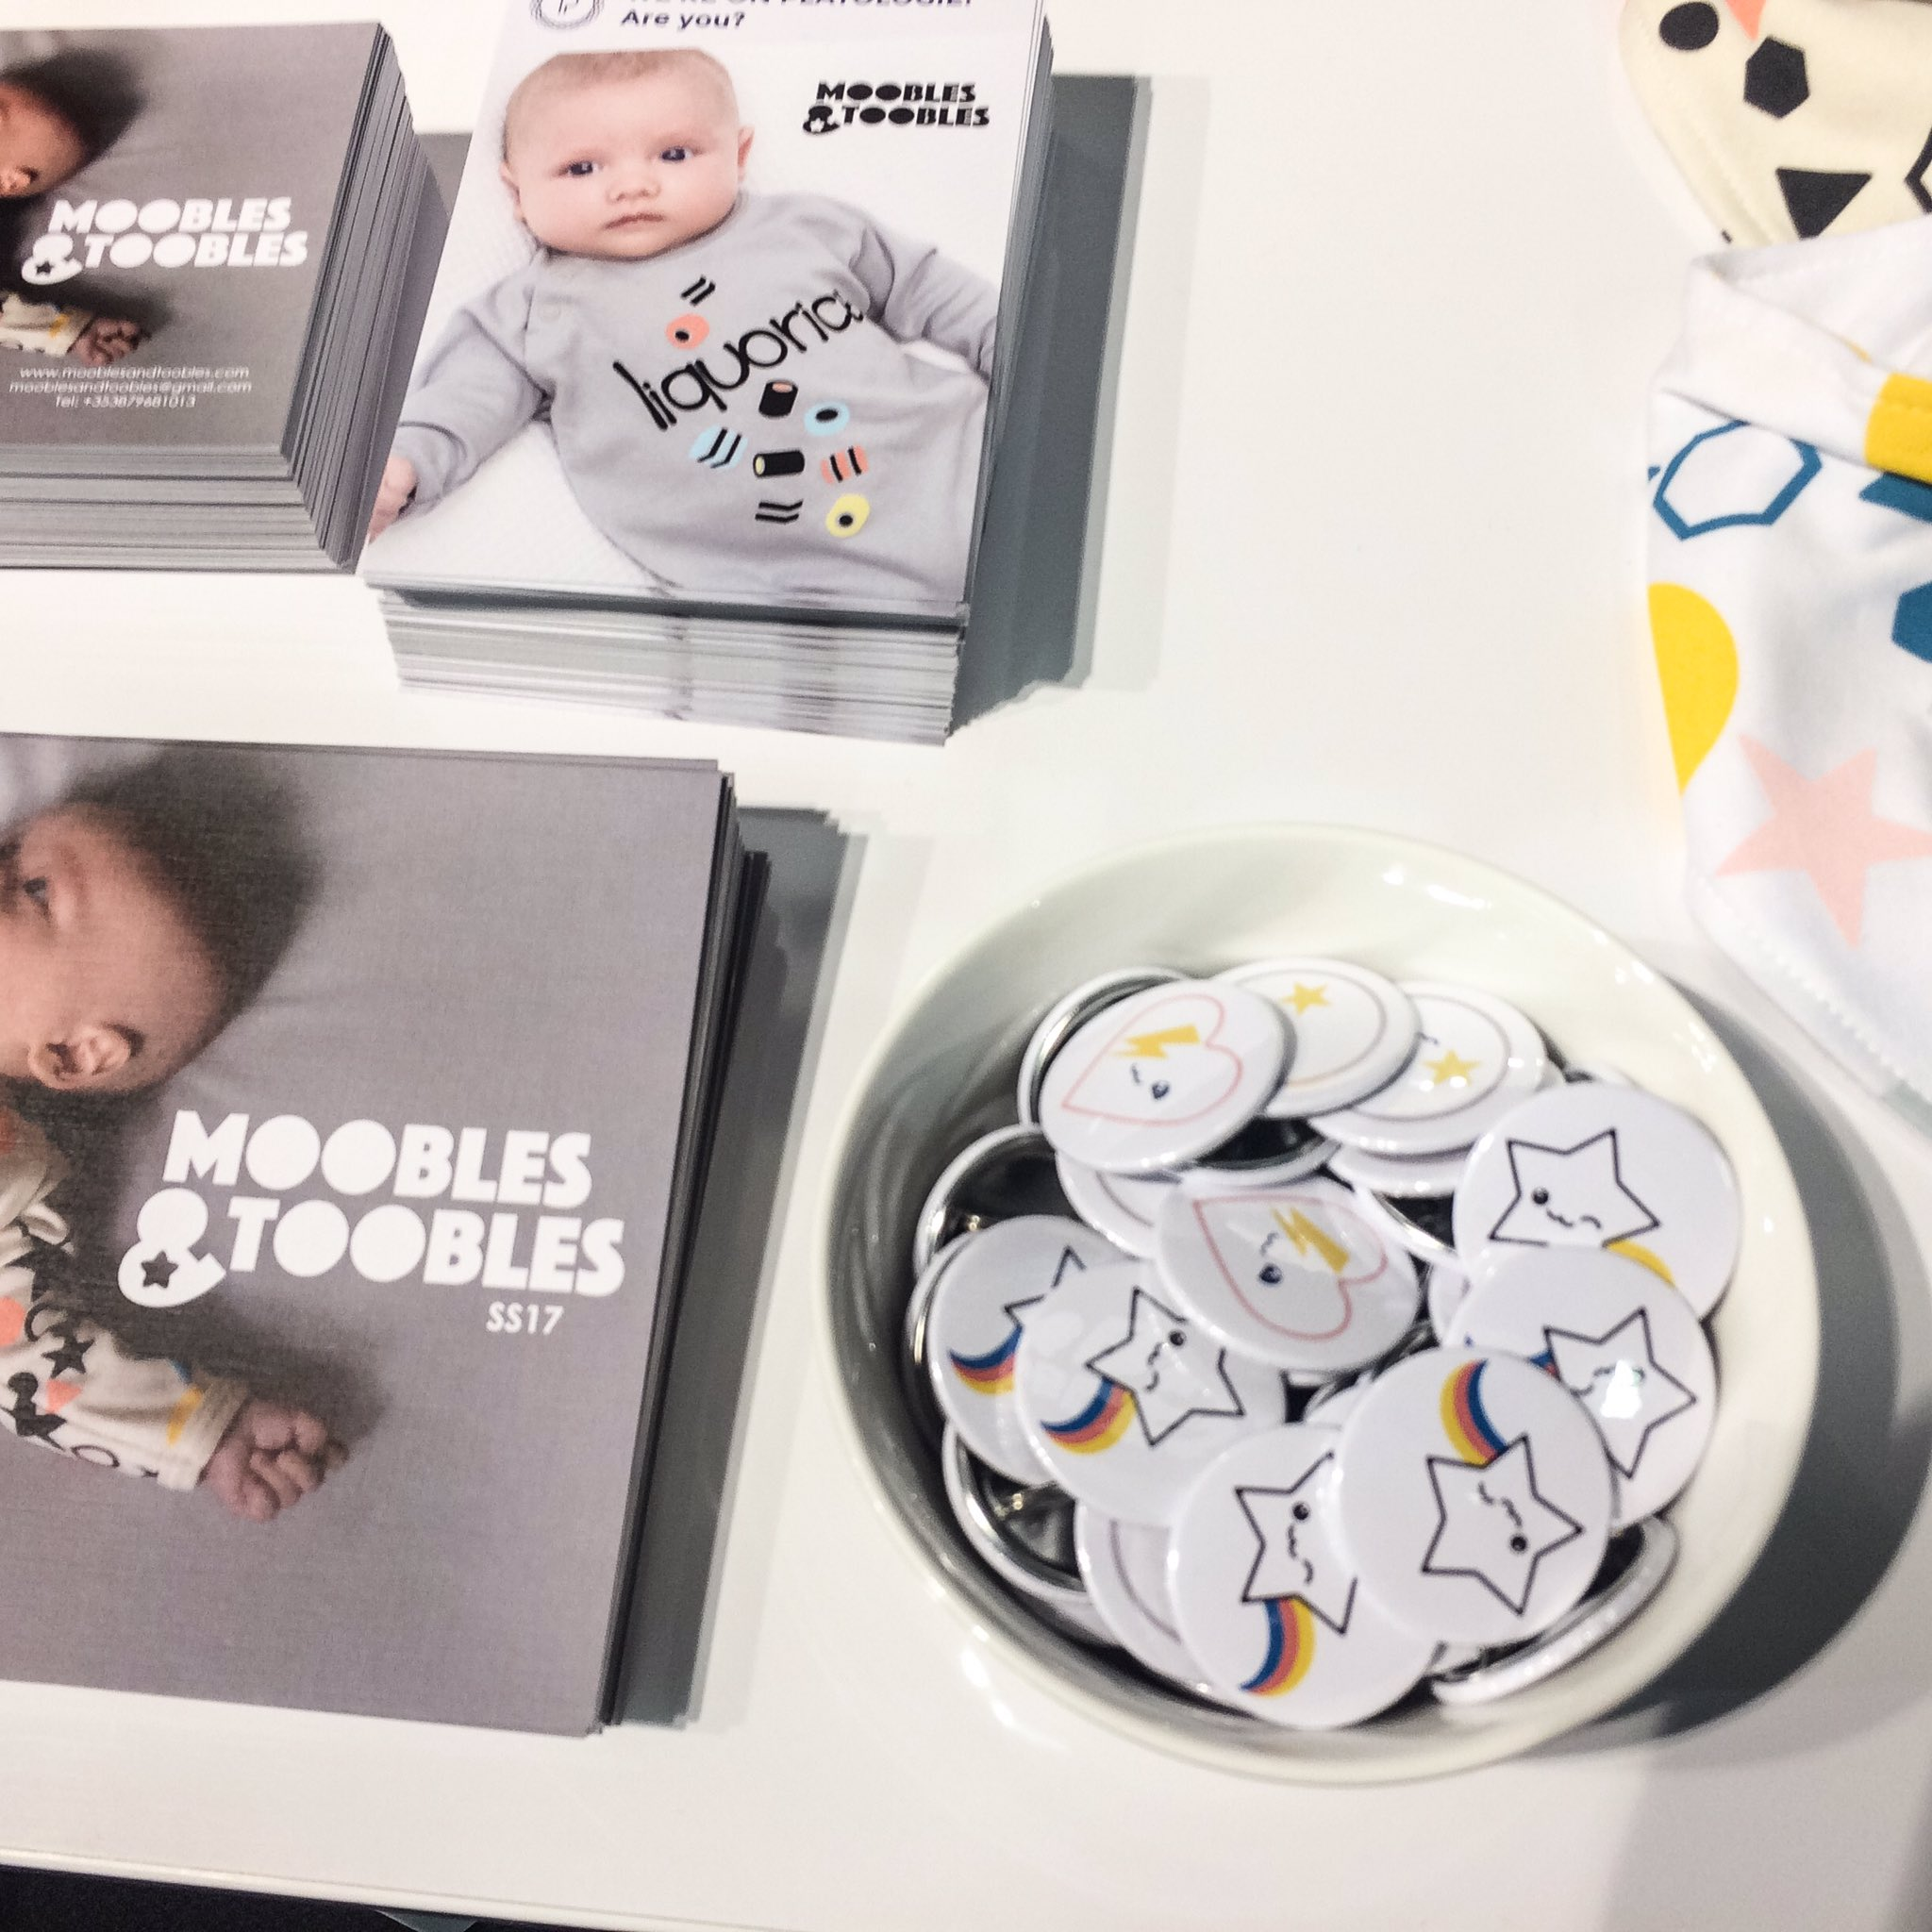 Printed Badges for Moobles and Toobles at the Playtime Trade Show in Paris